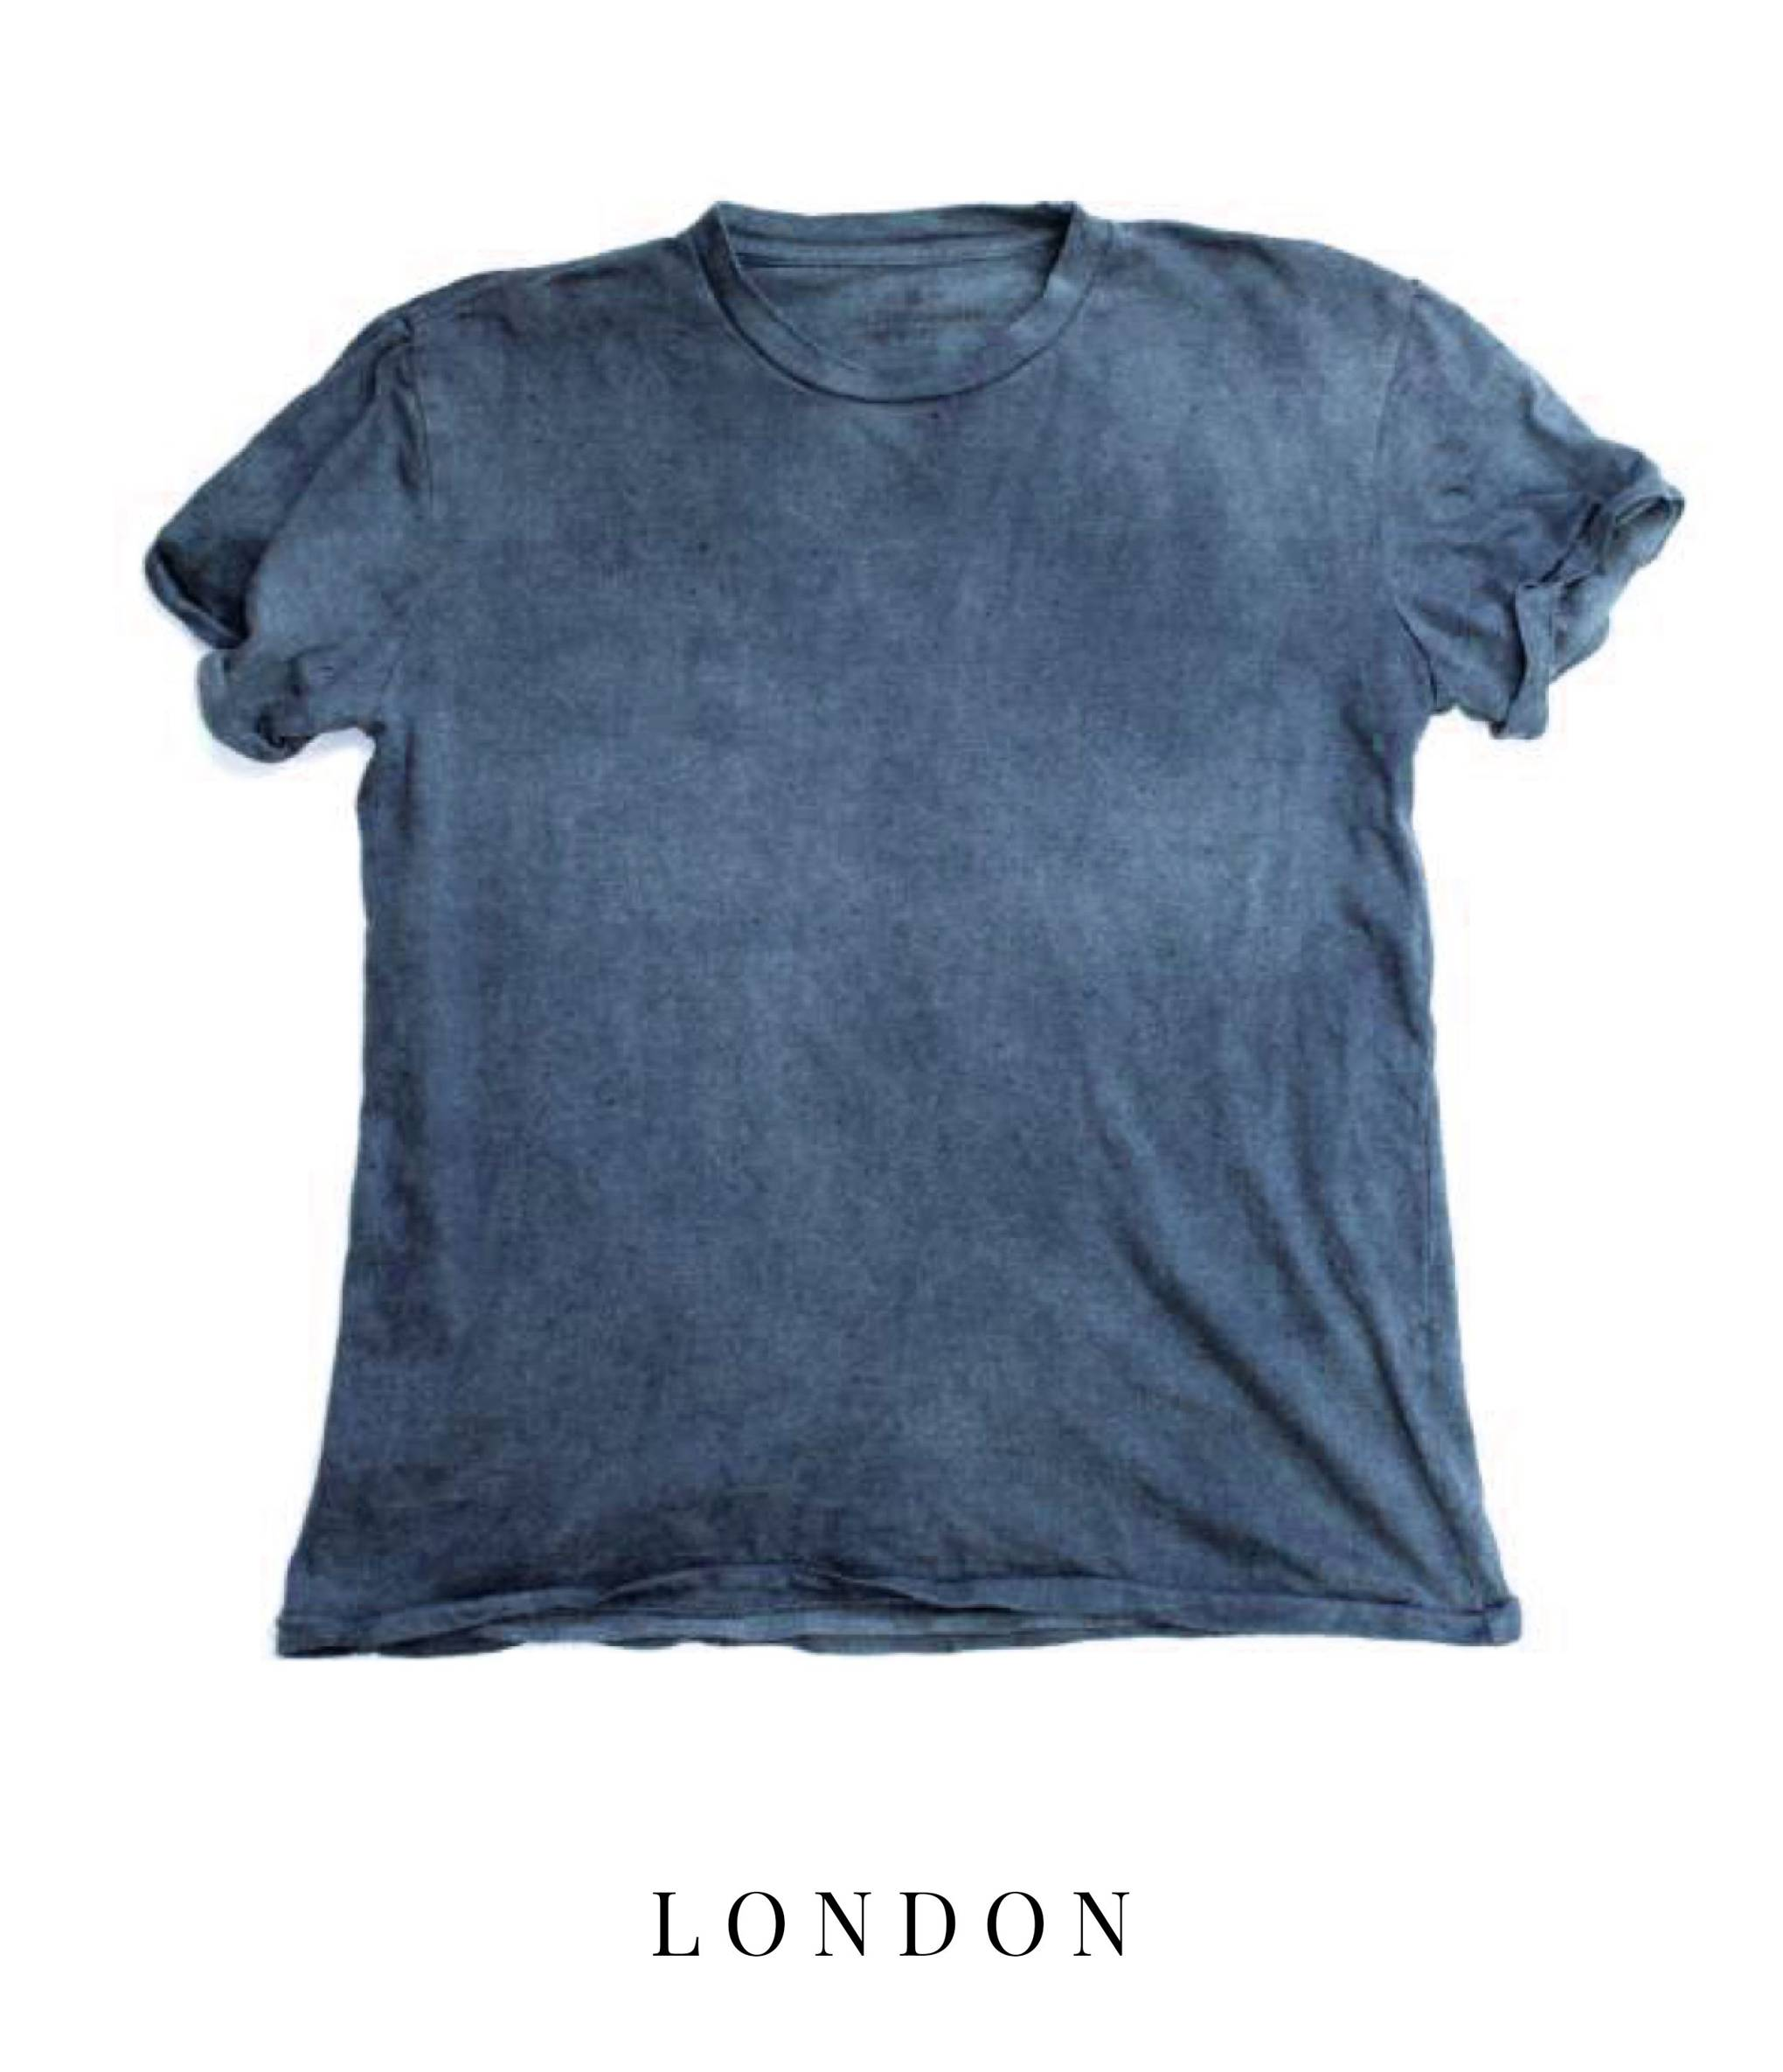 Colour-changing T-shirts reveal effects of climate change | WIRED UK